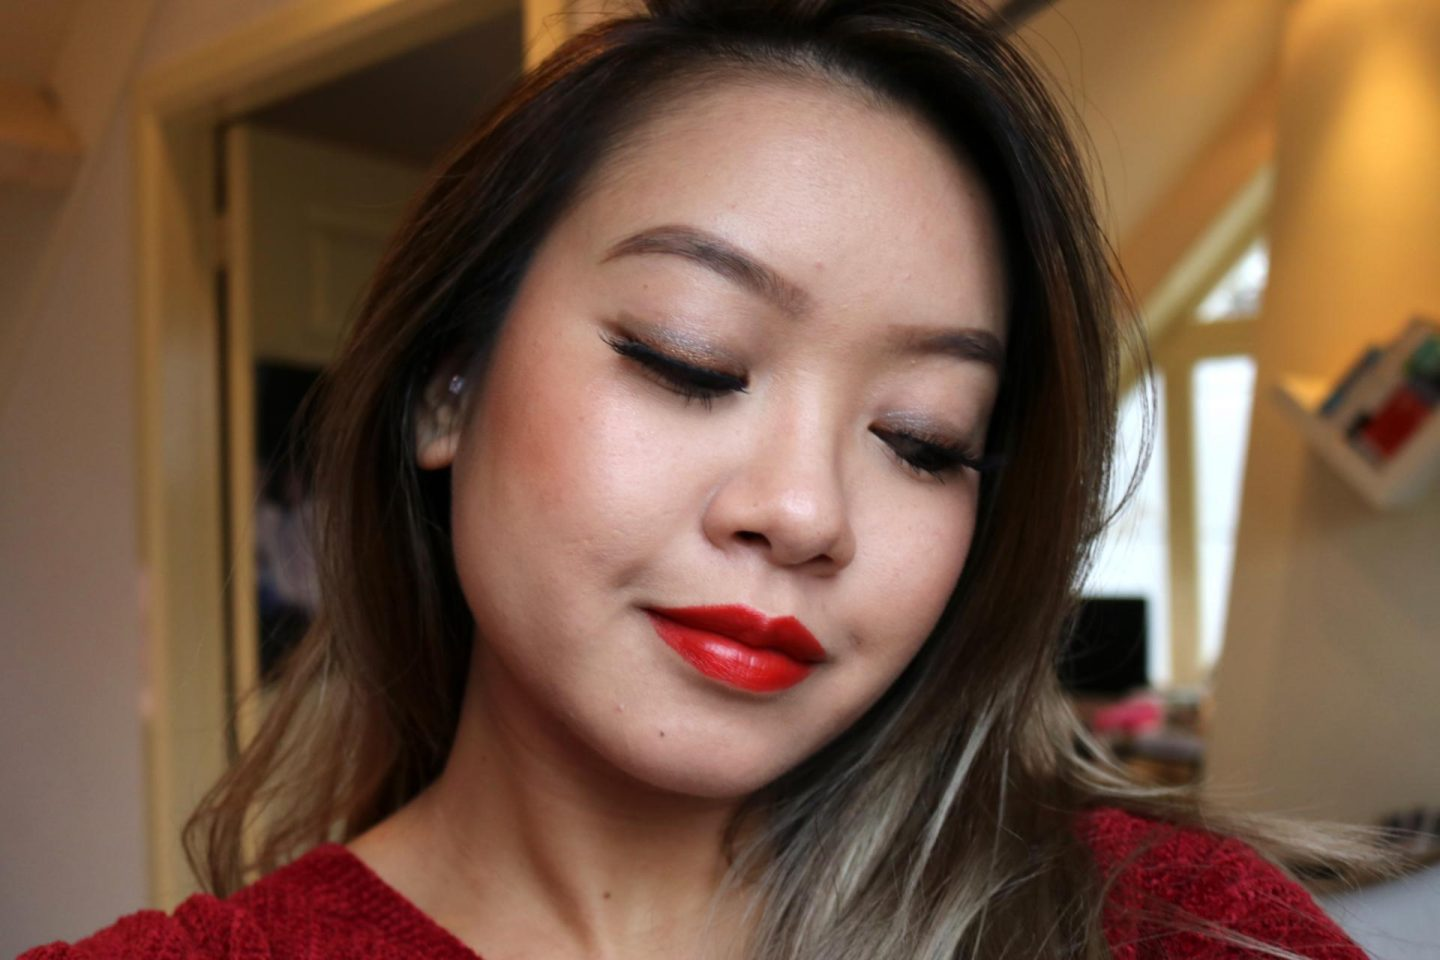 givenchy-makeup-holiday-2018-review_7509